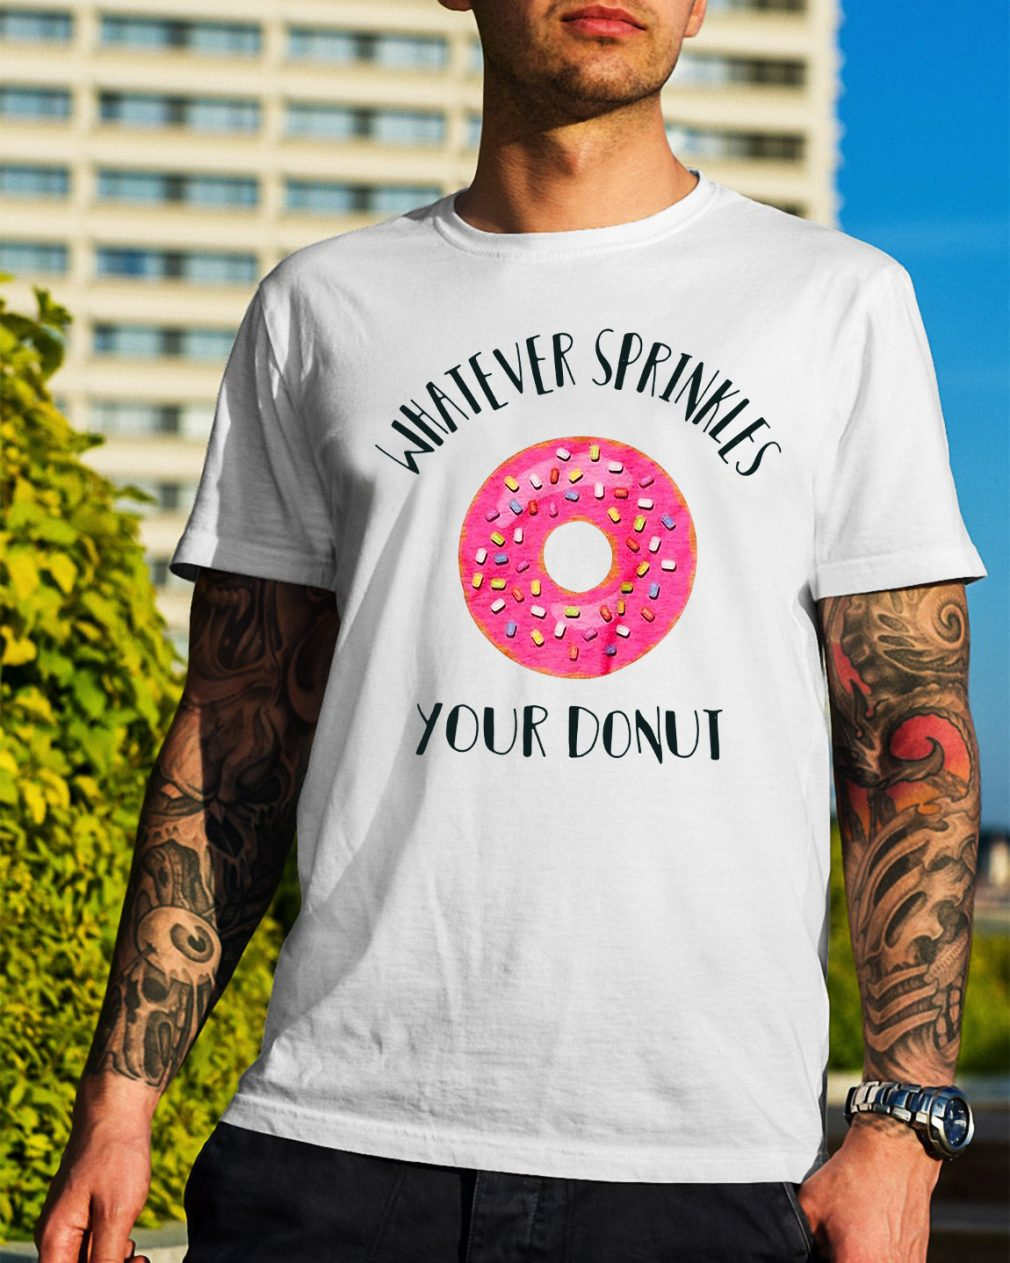 Whatever sprinkles your donuts shirt